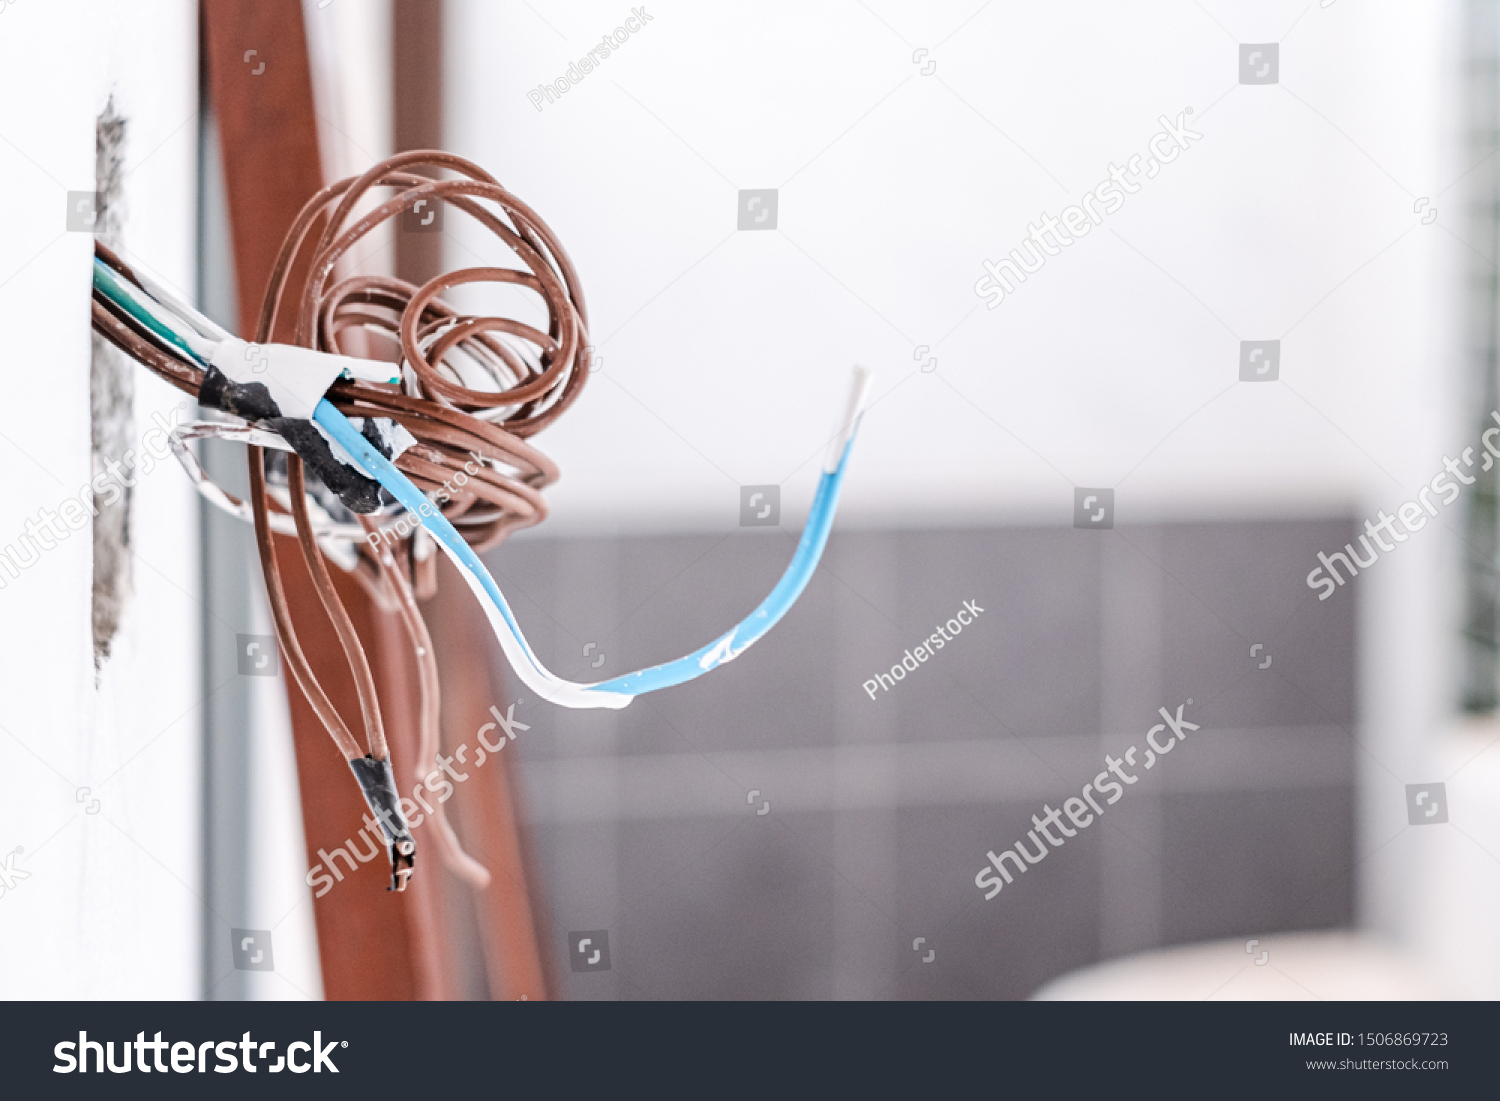 Unfinished Installation Electrical Wiring Mains Outlet Technology Stock Image 1506869723